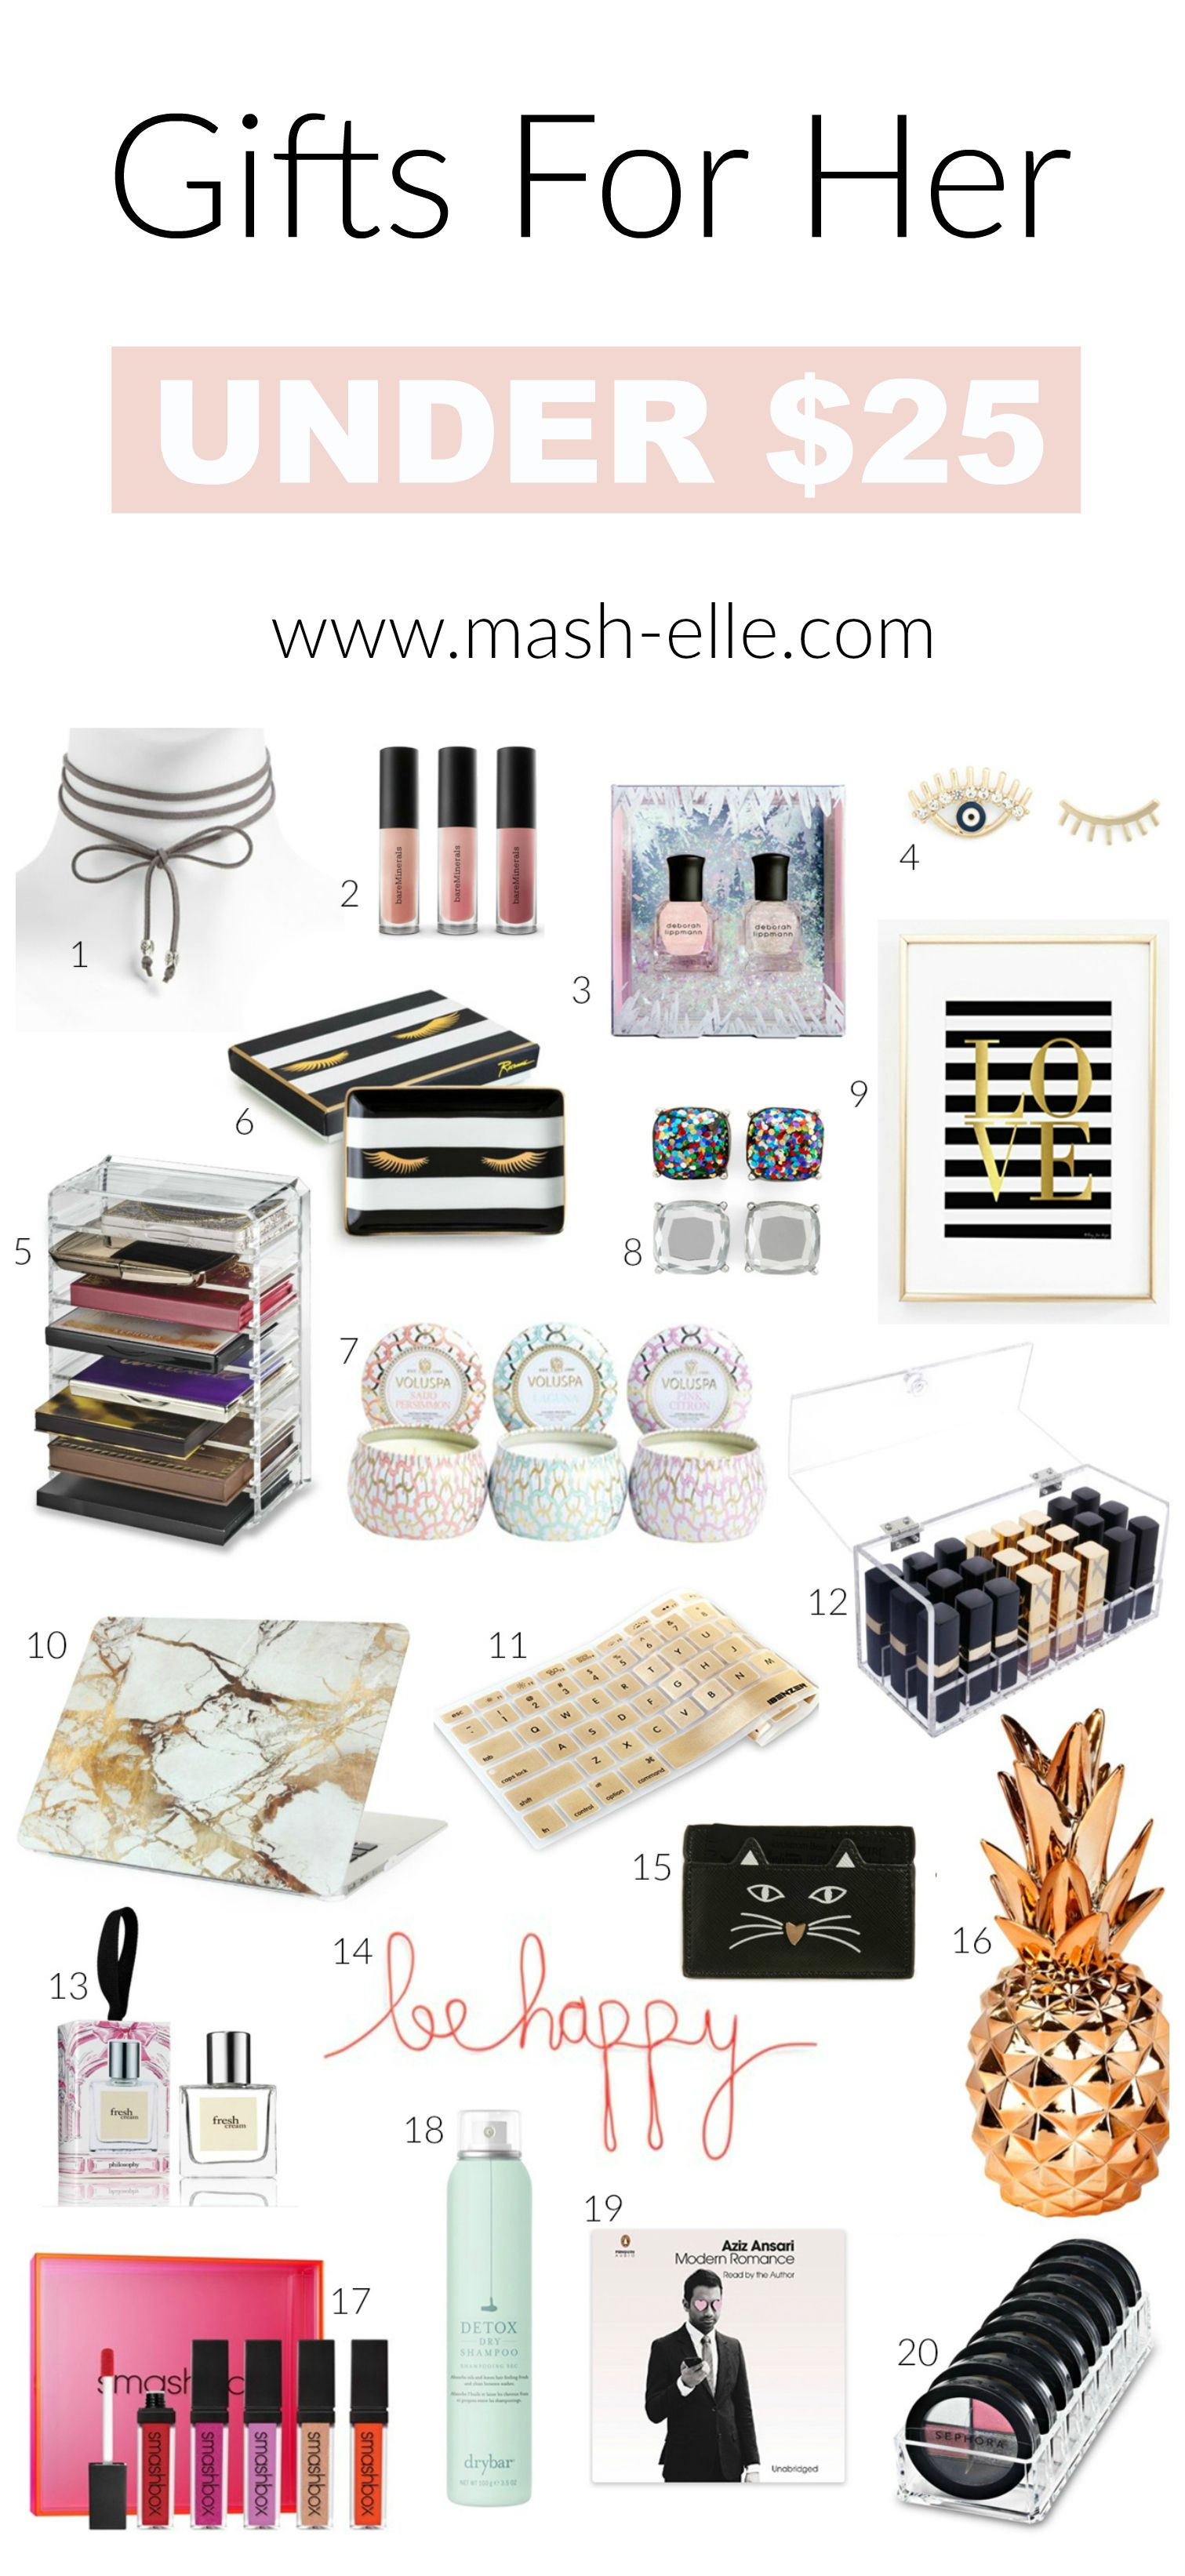 Gift Ideas for Her Under $25 | Gift Guide | Mash Elle | Birthday gifts for  her, Best friend gifts, Gifts for girls